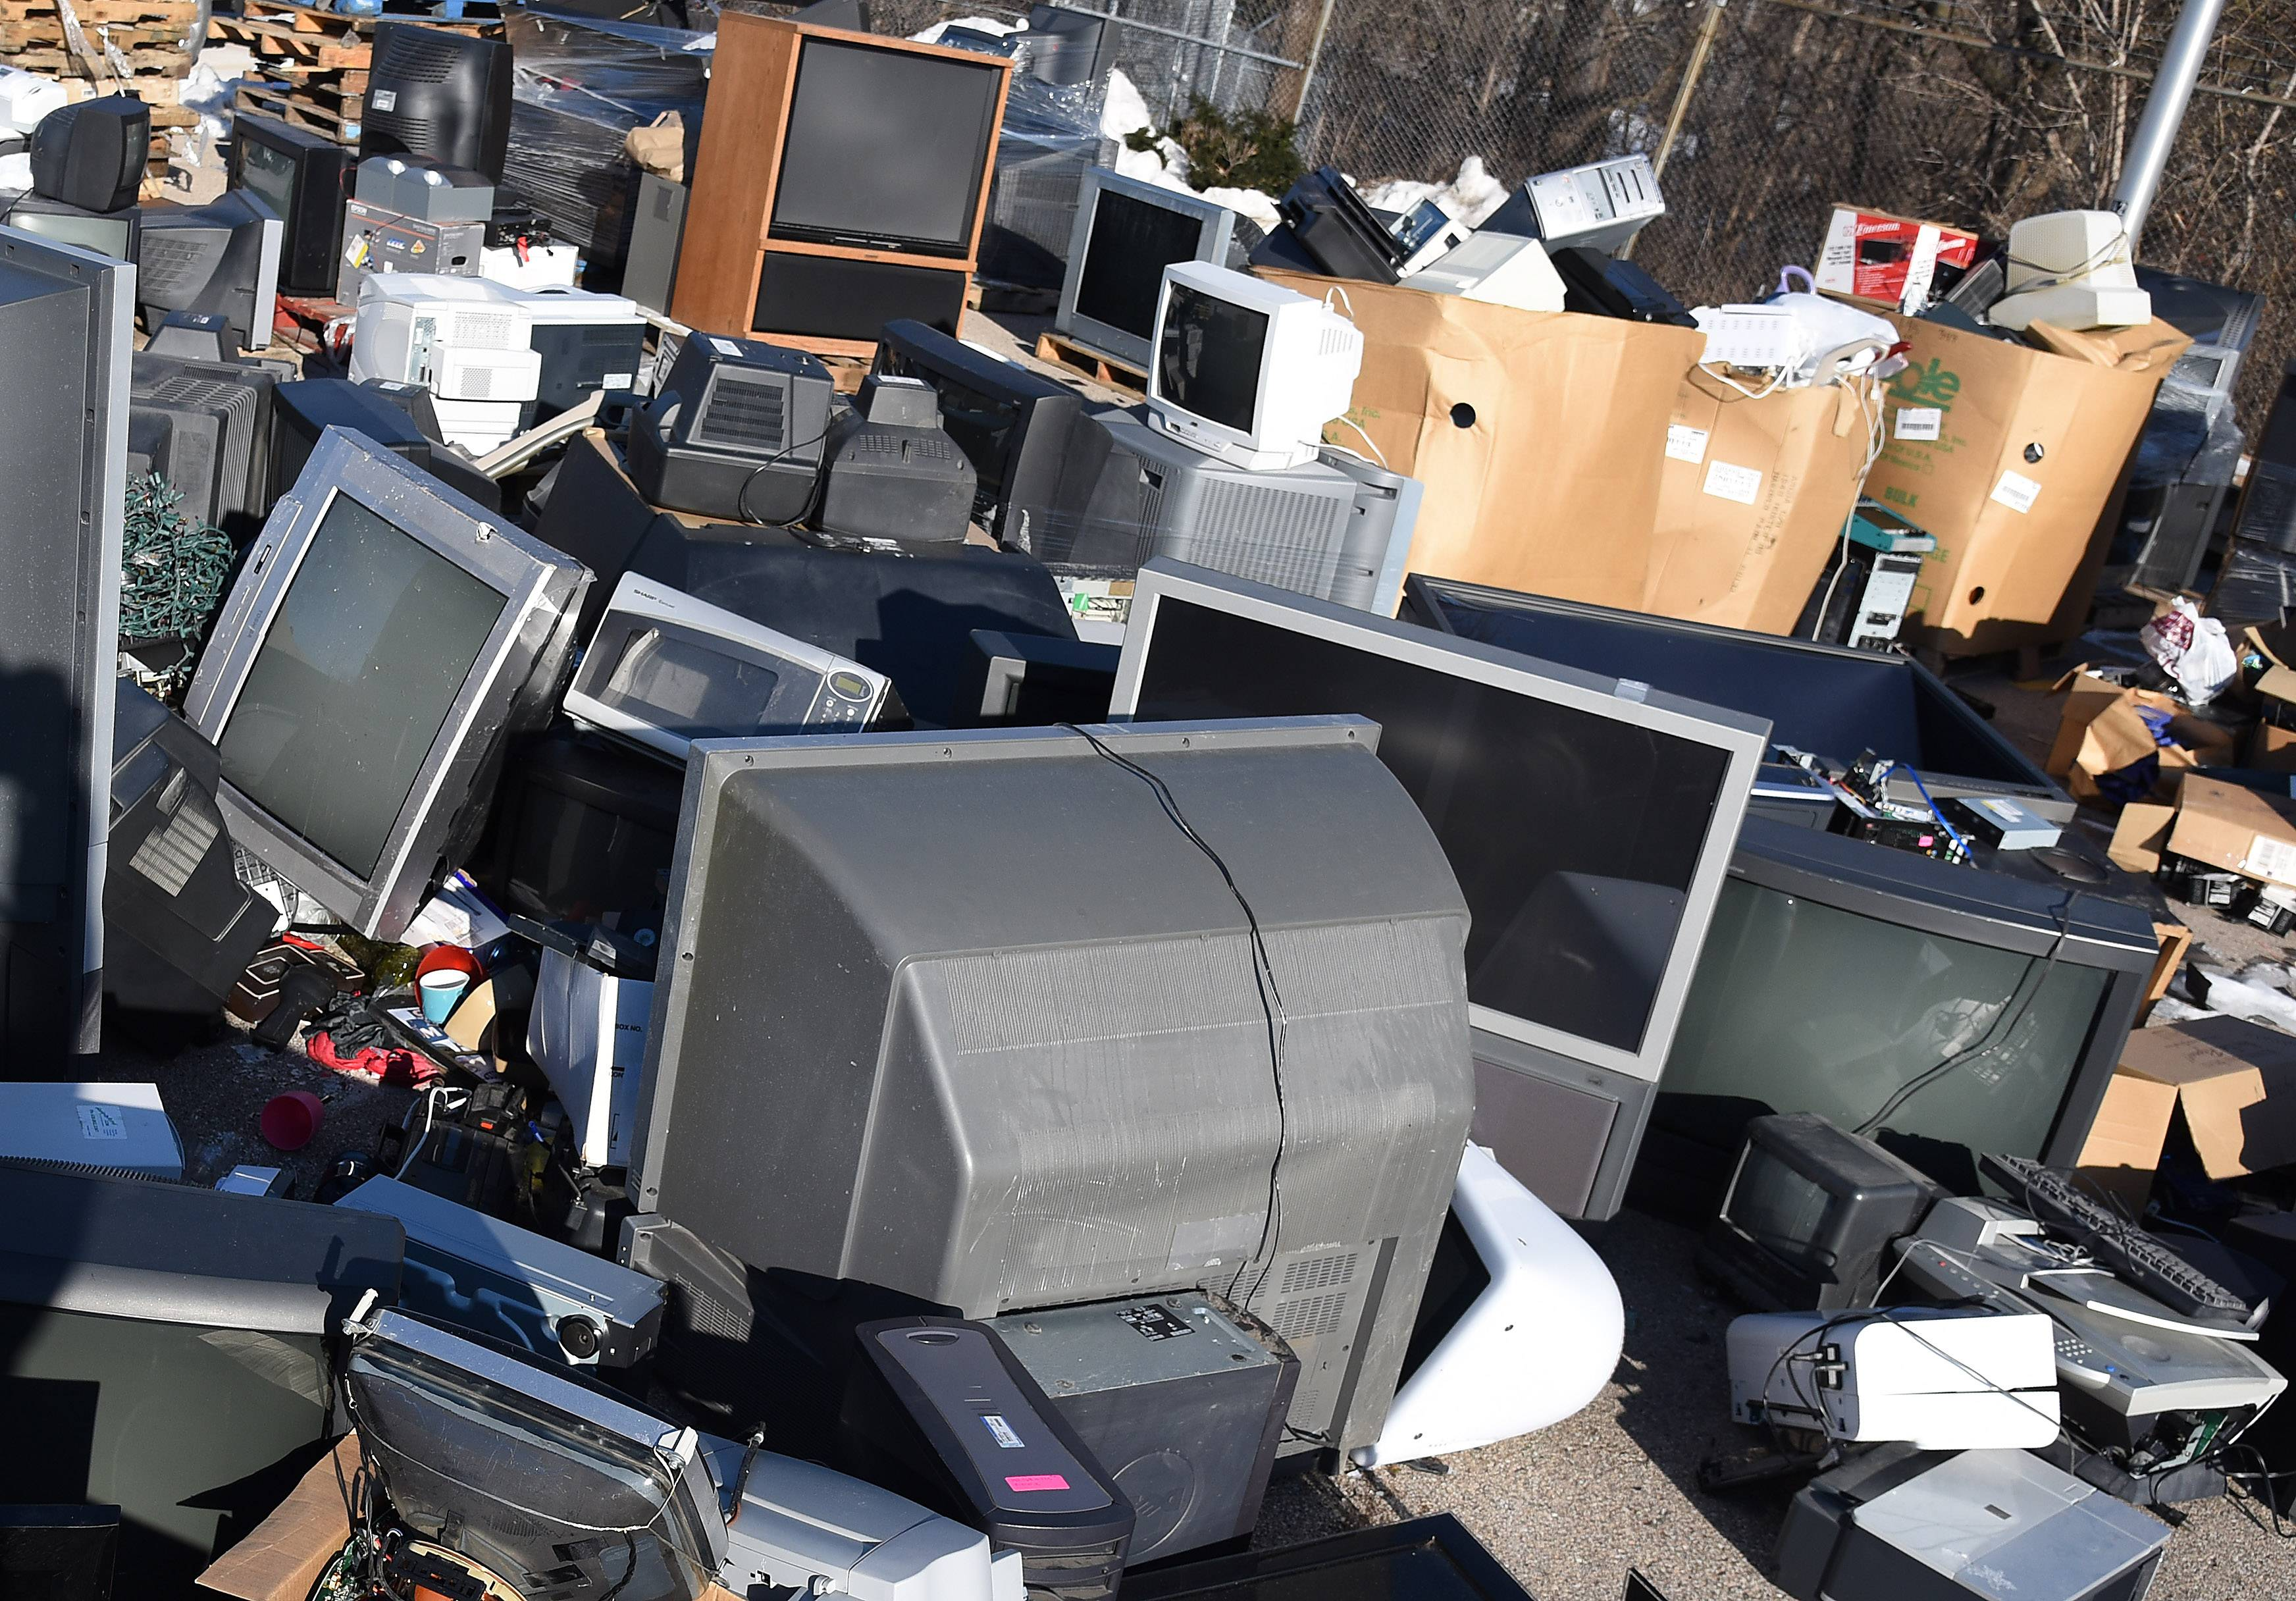 The St. Charles public works self-serve drop-off is one of two remaining permanent electronics recycling locations in Kane County, although city officials recently held a preliminary vote to close the site.